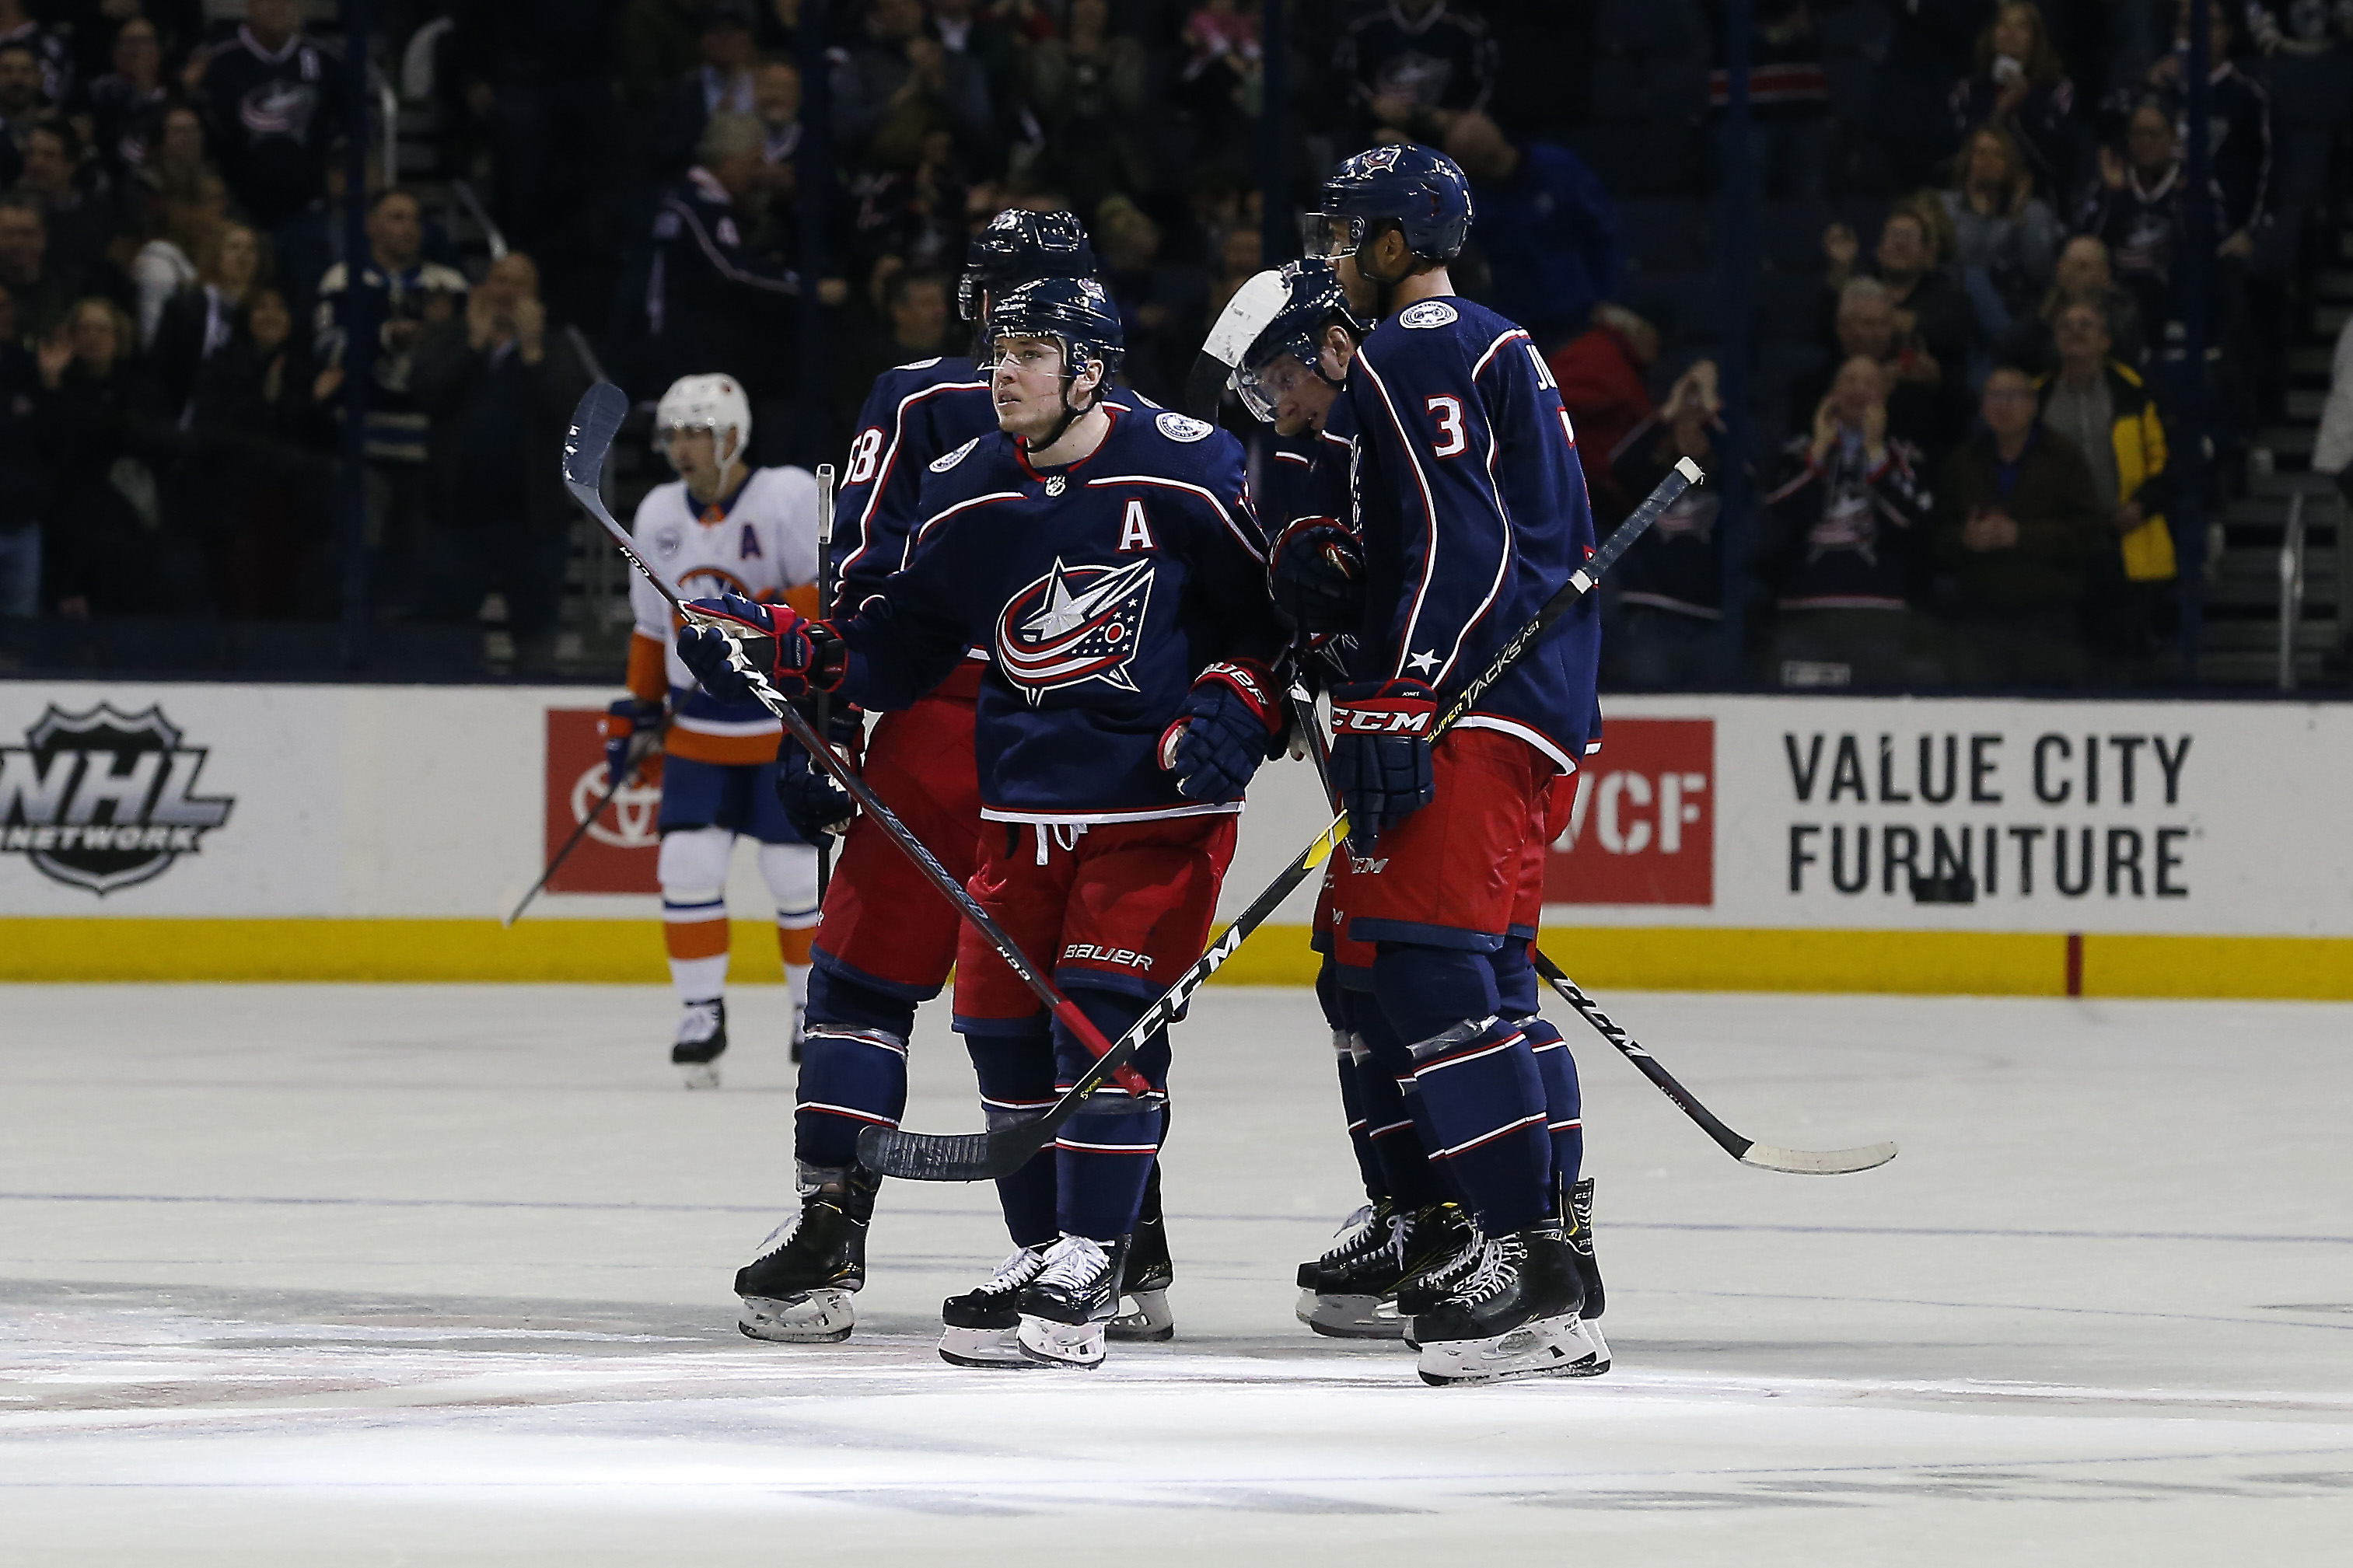 Mar 26, 2019; Columbus, OH, USA; Columbus Blue Jackets right wing Cam Atkinson (13) celebrates a goal during the third period against the New York Islanders at Nationwide Arena. Mandatory Credit: Russell LaBounty-USA TODAY Sports